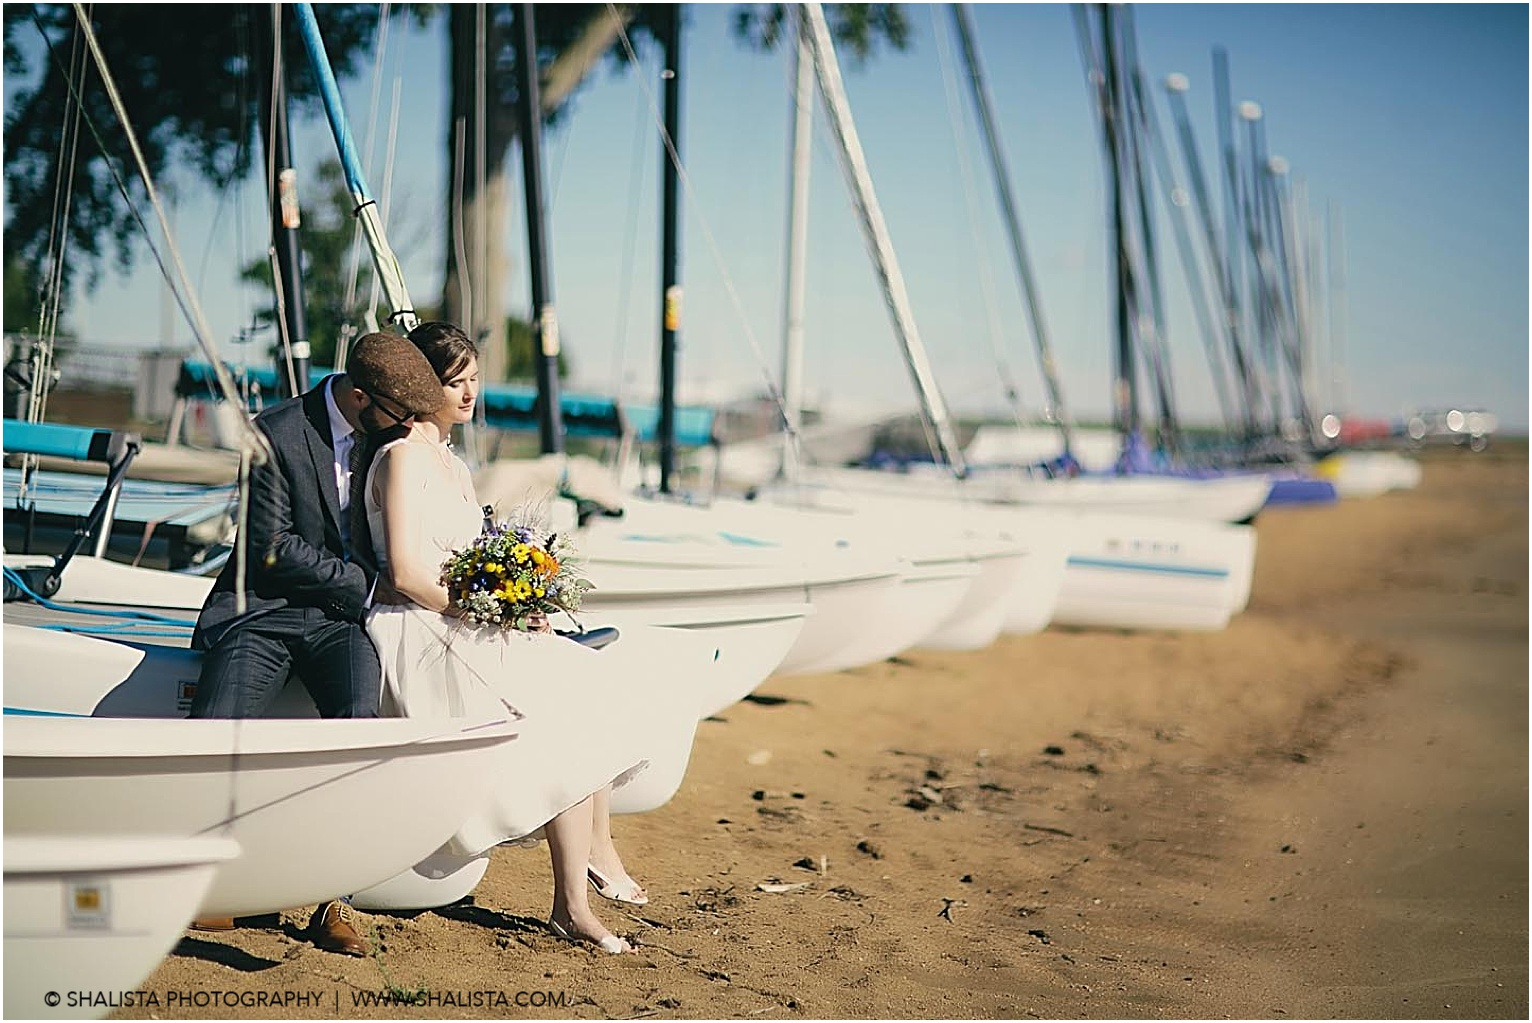 Sail Boat wedding Photography